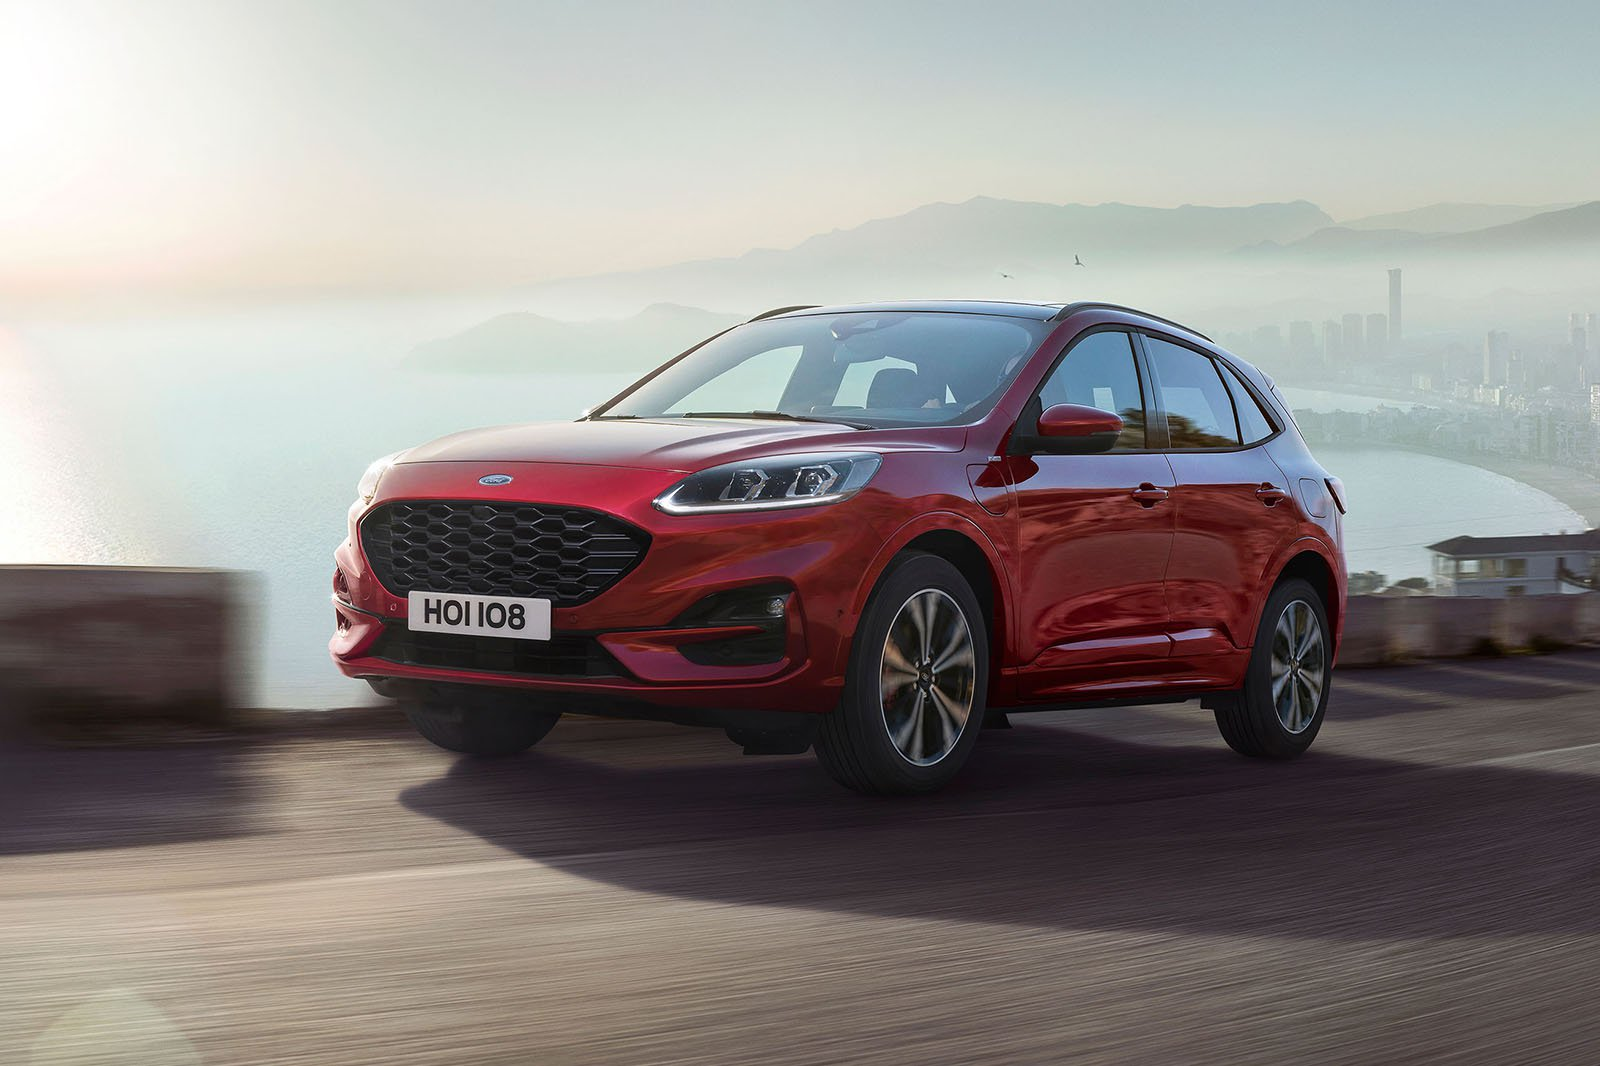 2020 Ford Kuga Hybrid Specs And Release Date >> 2020 Ford Kuga Suv Price Specs And Release Date What Car